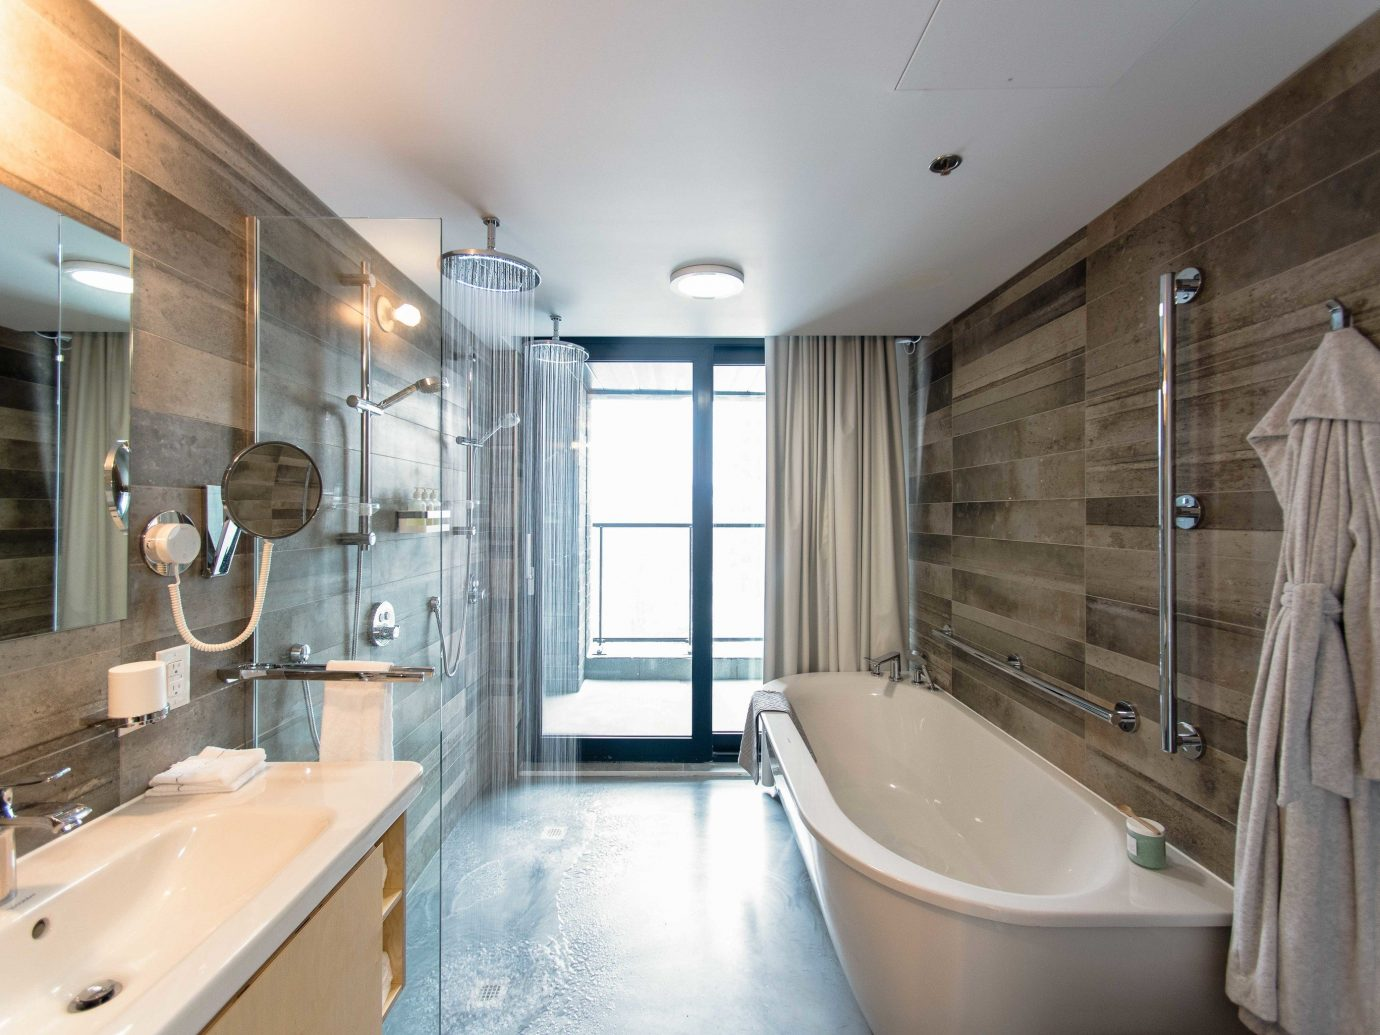 Boutique Hotels Chicago Hotels indoor wall bathroom floor ceiling room property window interior design estate home sink tub real estate flooring interior designer bathtub toilet Bath Modern tile tiled